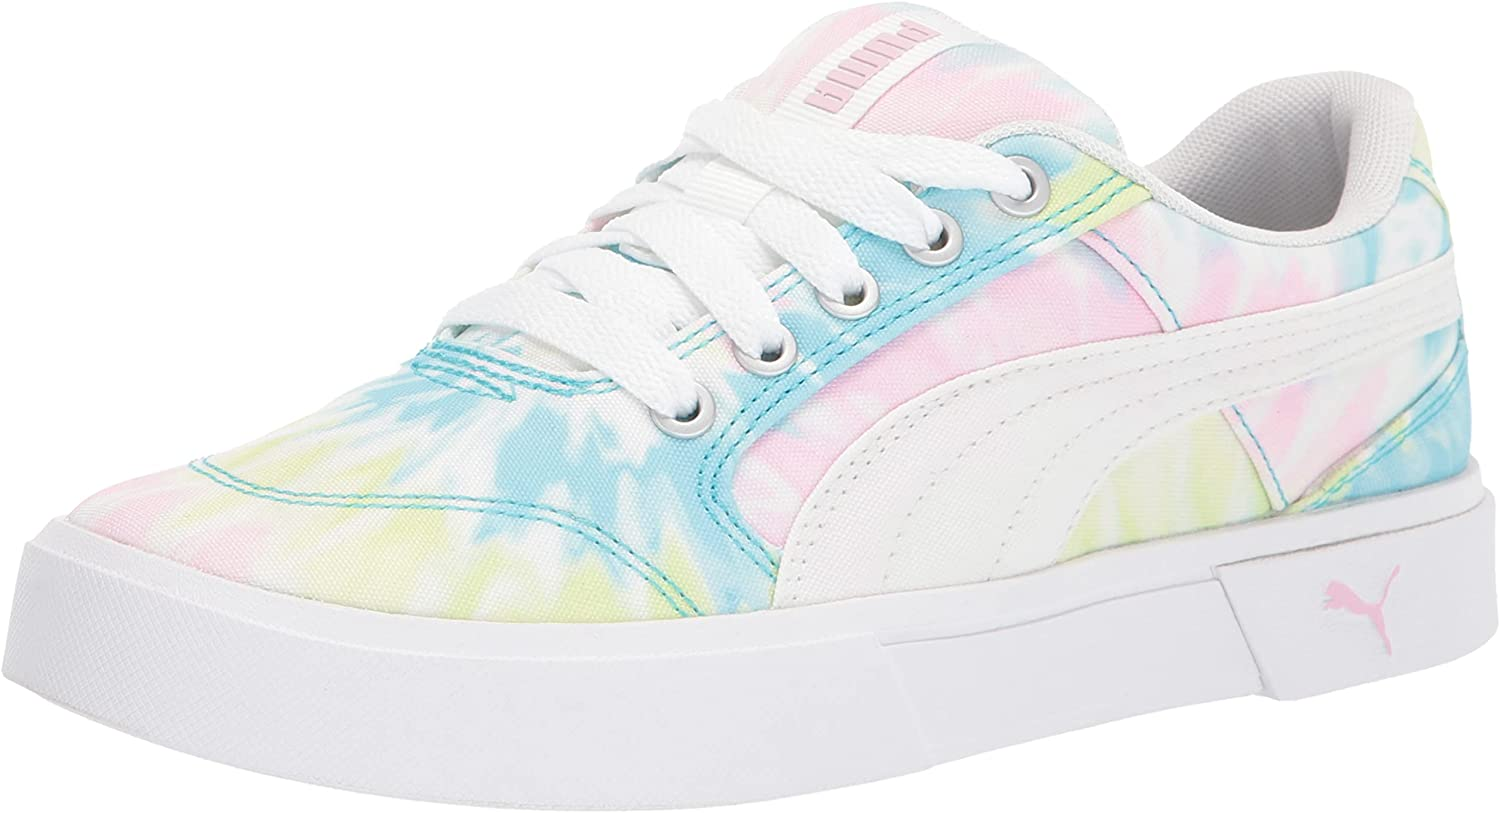 PUMA Free shipping Today's only New Unisex-Child Sneaker C-Rey